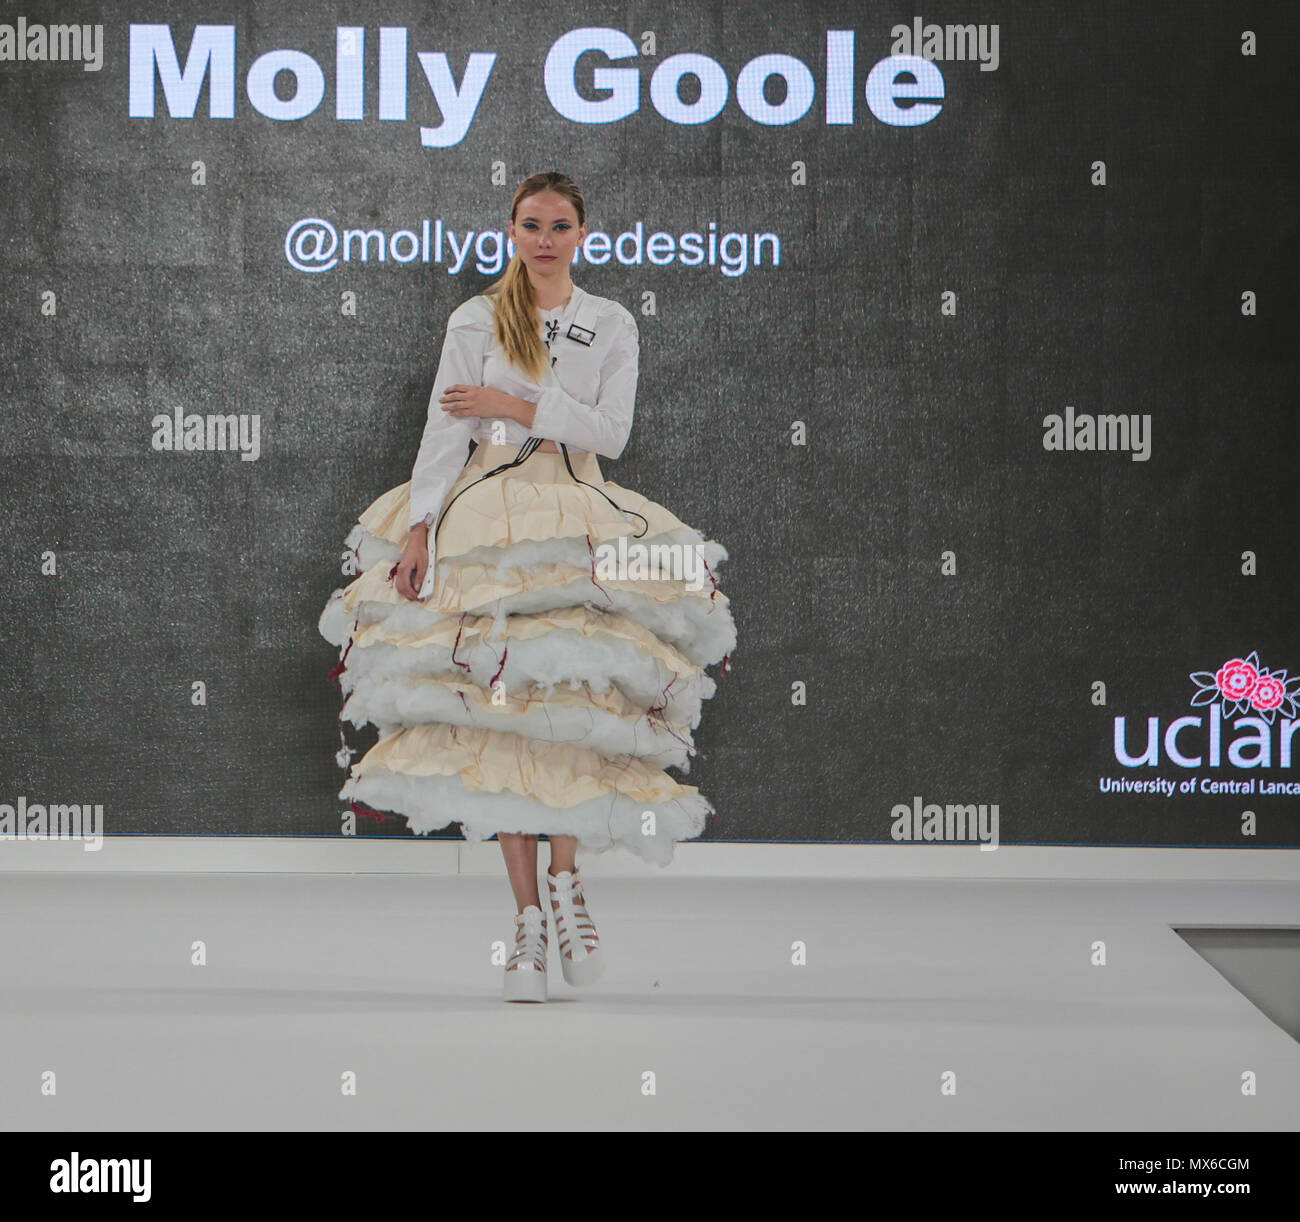 London Uk 03 June 2018 Graduate Fashion Week The Largest Showcase Of Ba Fashion In The World With Over 35 Uk Universities And Colleges On Show Representing The Future Of Creative Design Talent